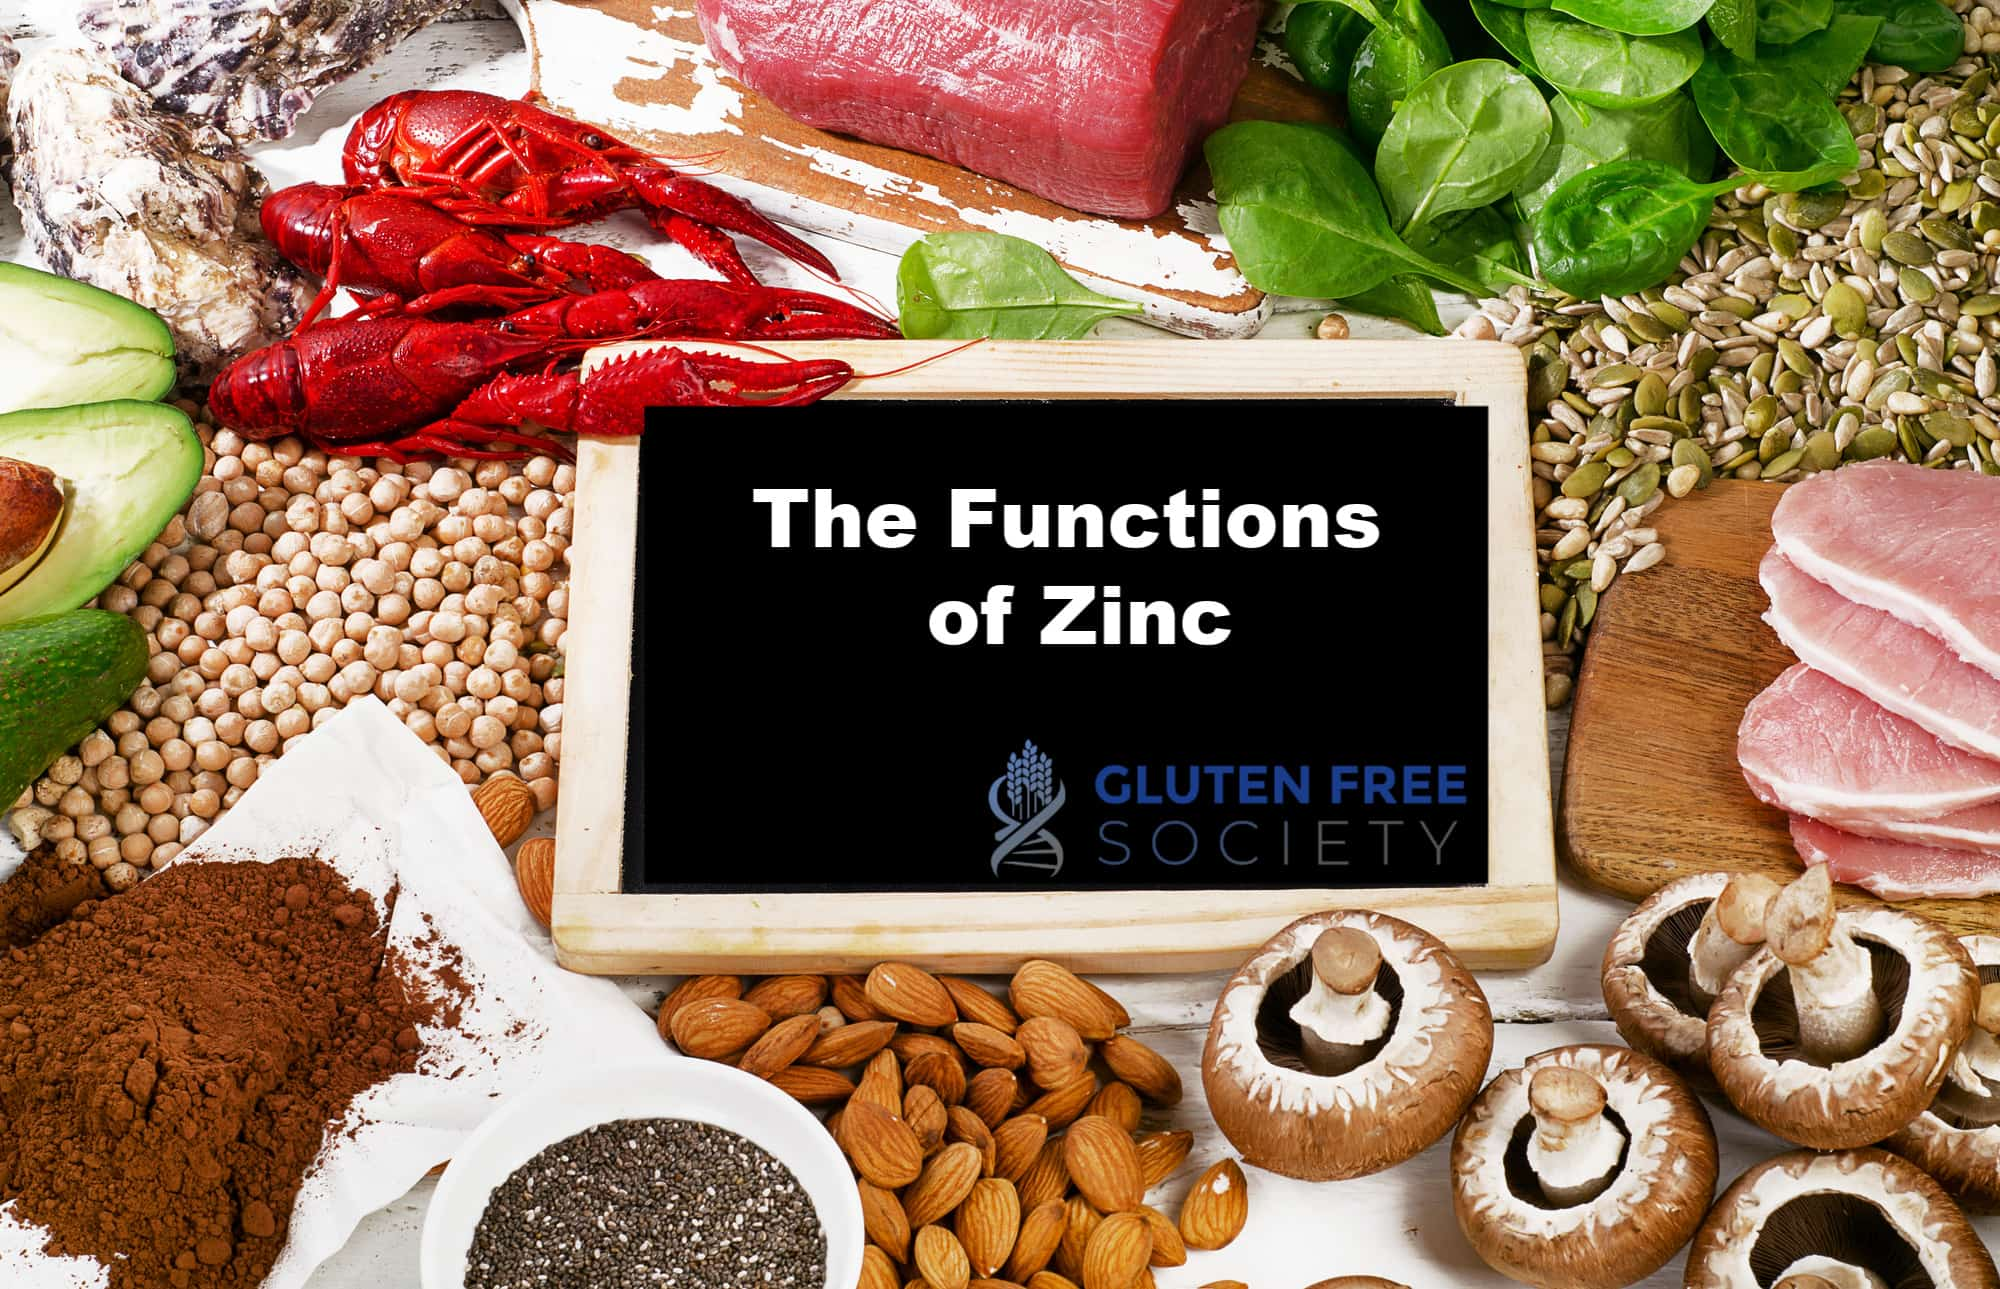 the functions of zinc - What Are The Functions of Zinc?